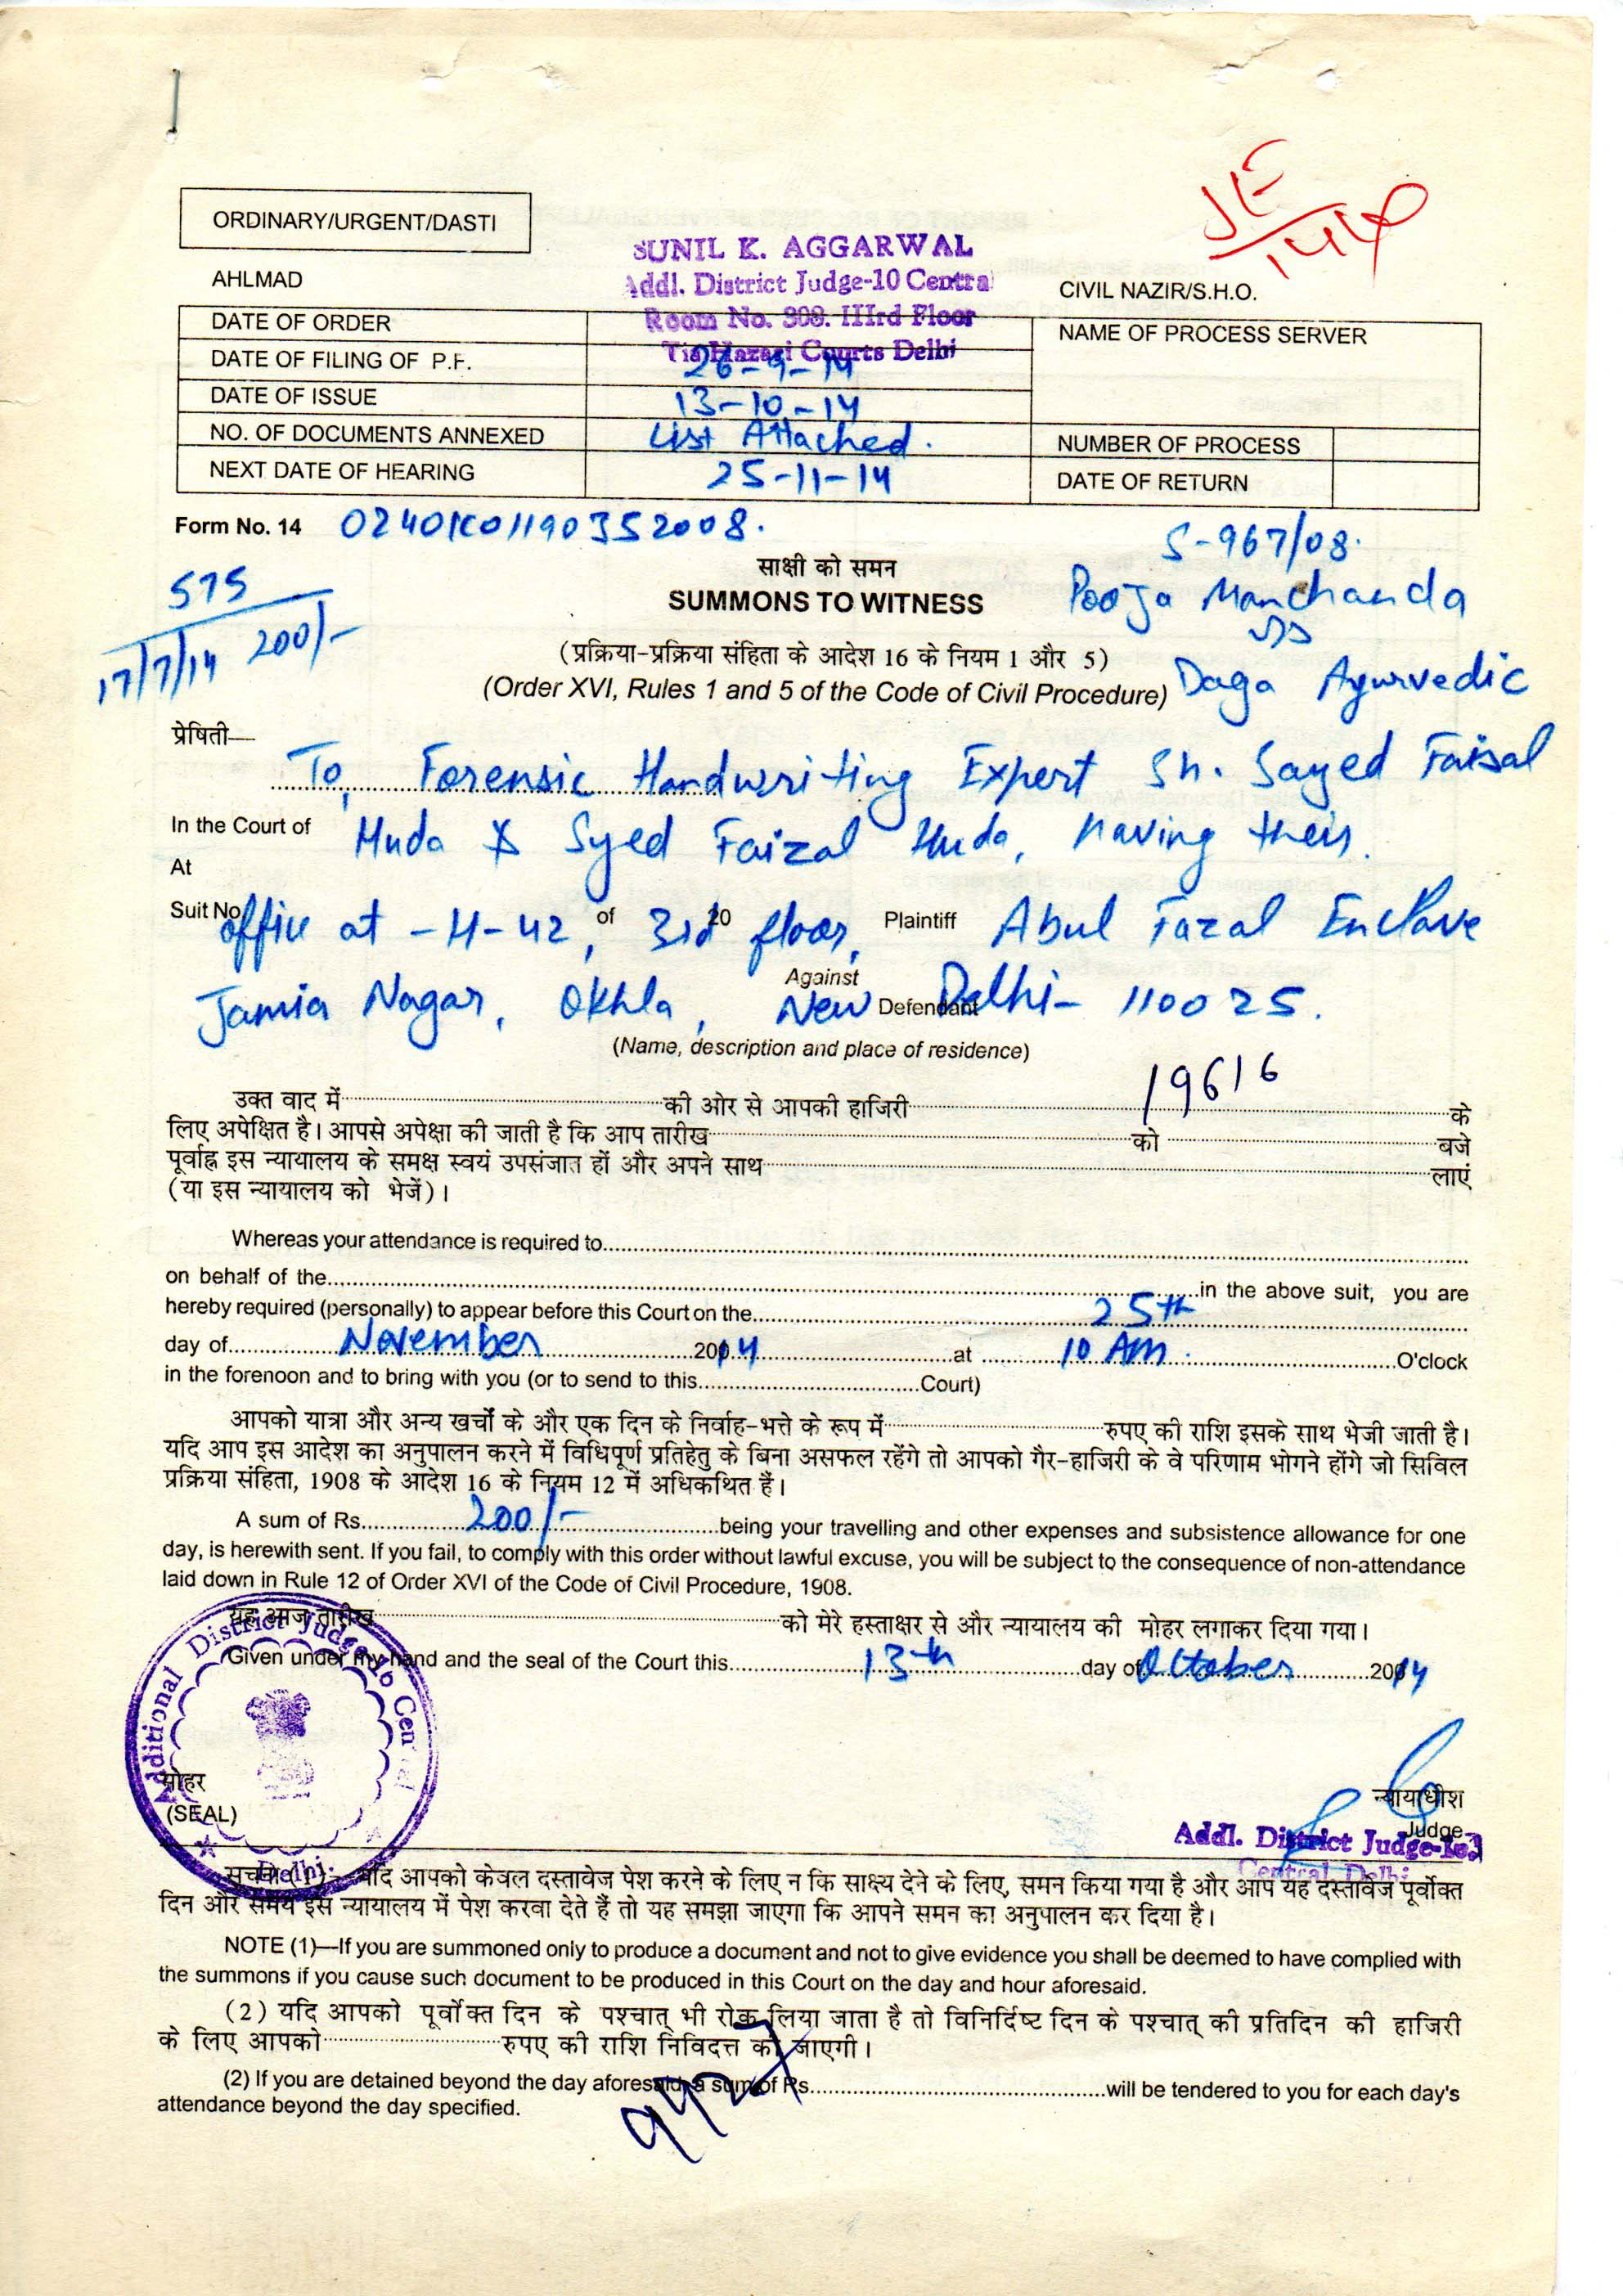 SUMMON FROM S. K. AGARWAL COURT (ADJ), TISHAZARI